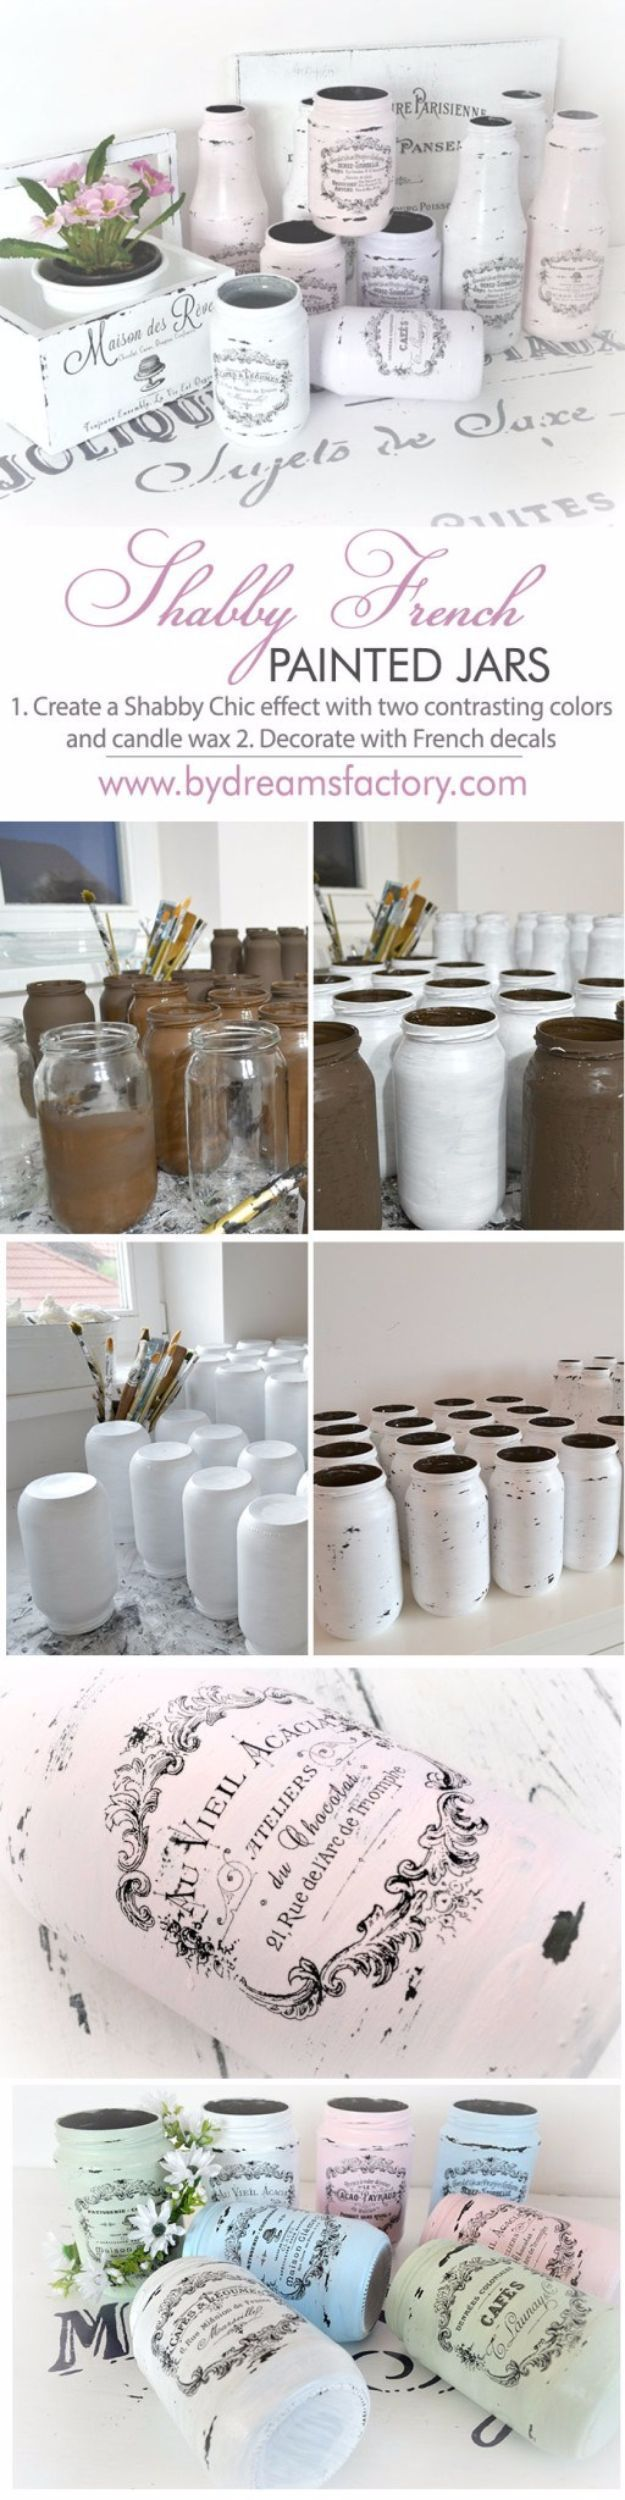 Shabby Chic Decor and Bedding Ideas - Shabby French Painted Jars - Rustic and Romantic Vintage Bedroom, Living Room and Kitchen Country Cottage Furniture and Home Decor Ideas. Step by Step Tutorials and Instructions http://diyjoy.com/diy-shabby-chic-decor-bedding #RomanticHomeDecor